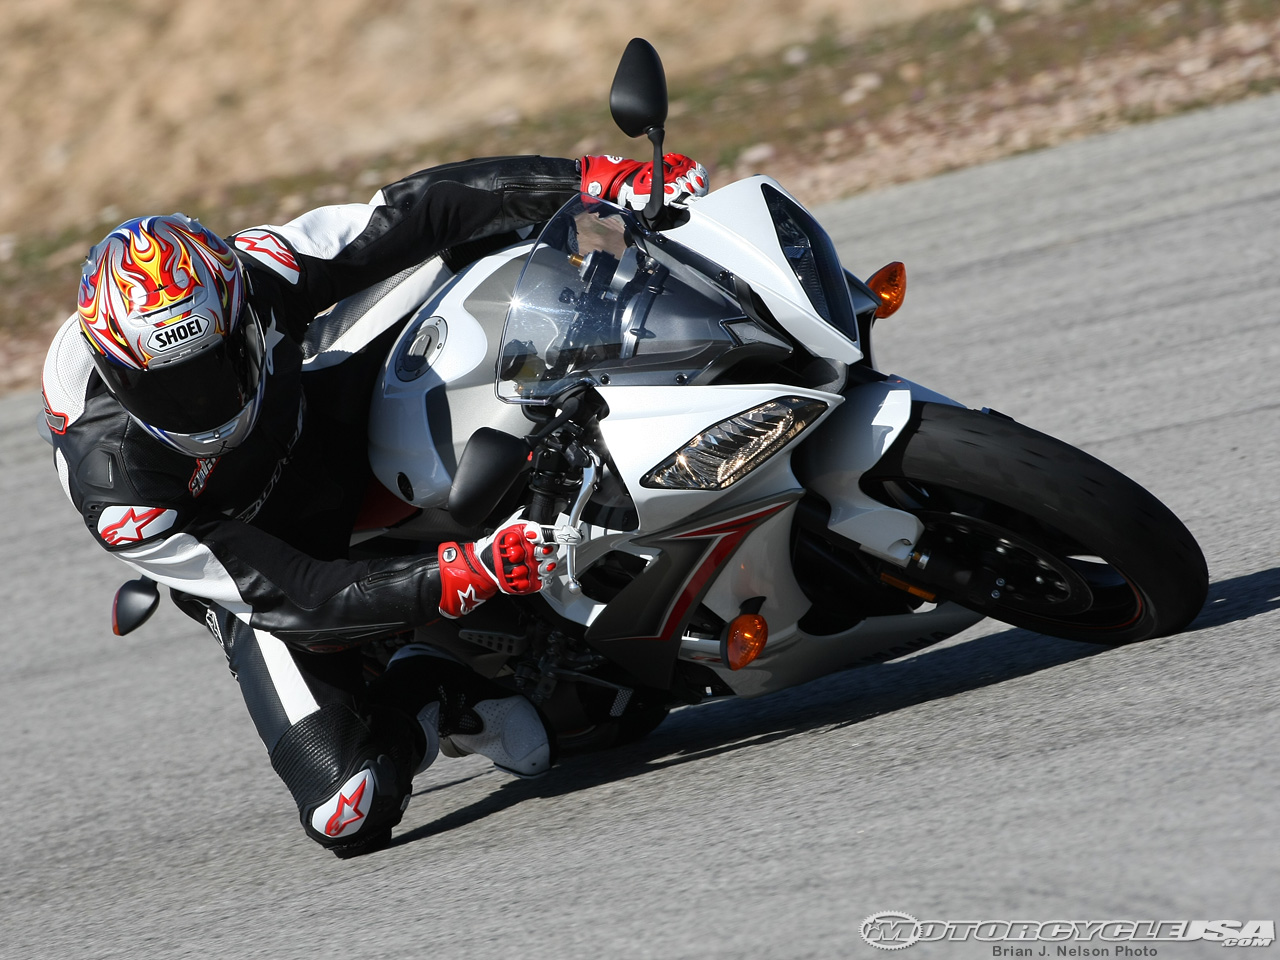 Yamaha yzf-r6s photo - 1